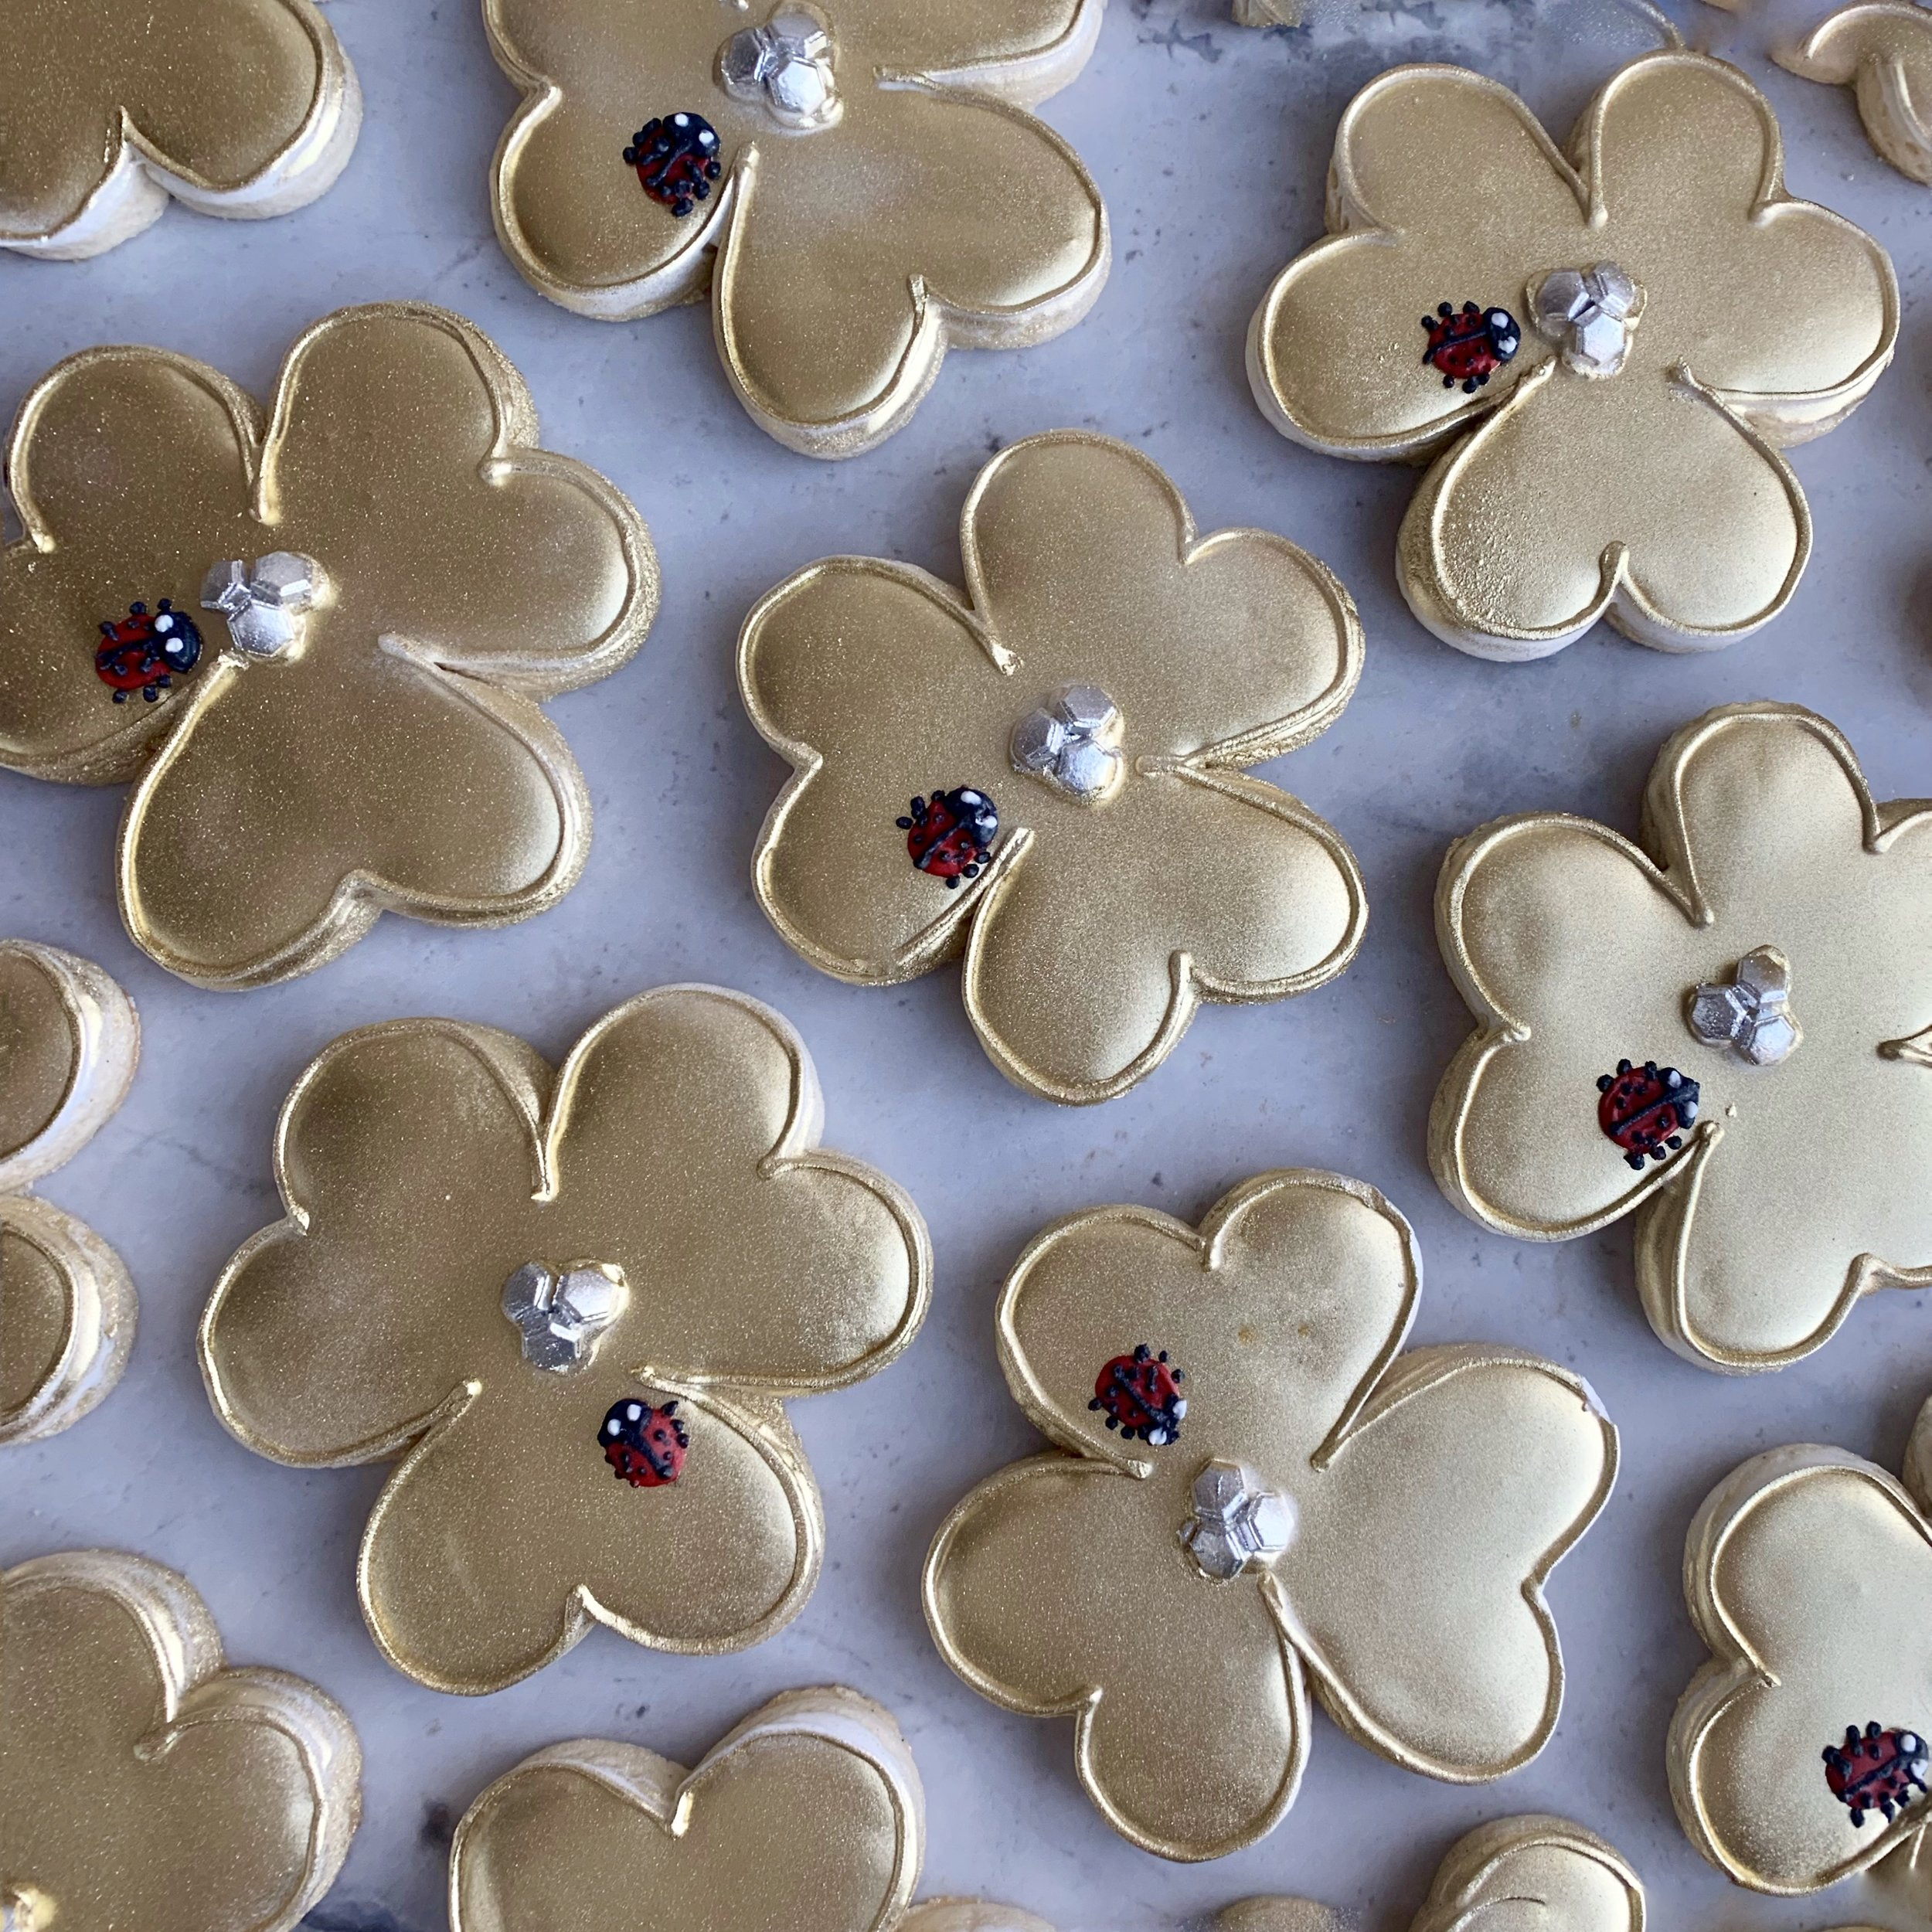 Custom cookies for the prestigious Van Cleef and Arpels - we created cookies to match a piece of their jewelry for their corporate event in 2019 -